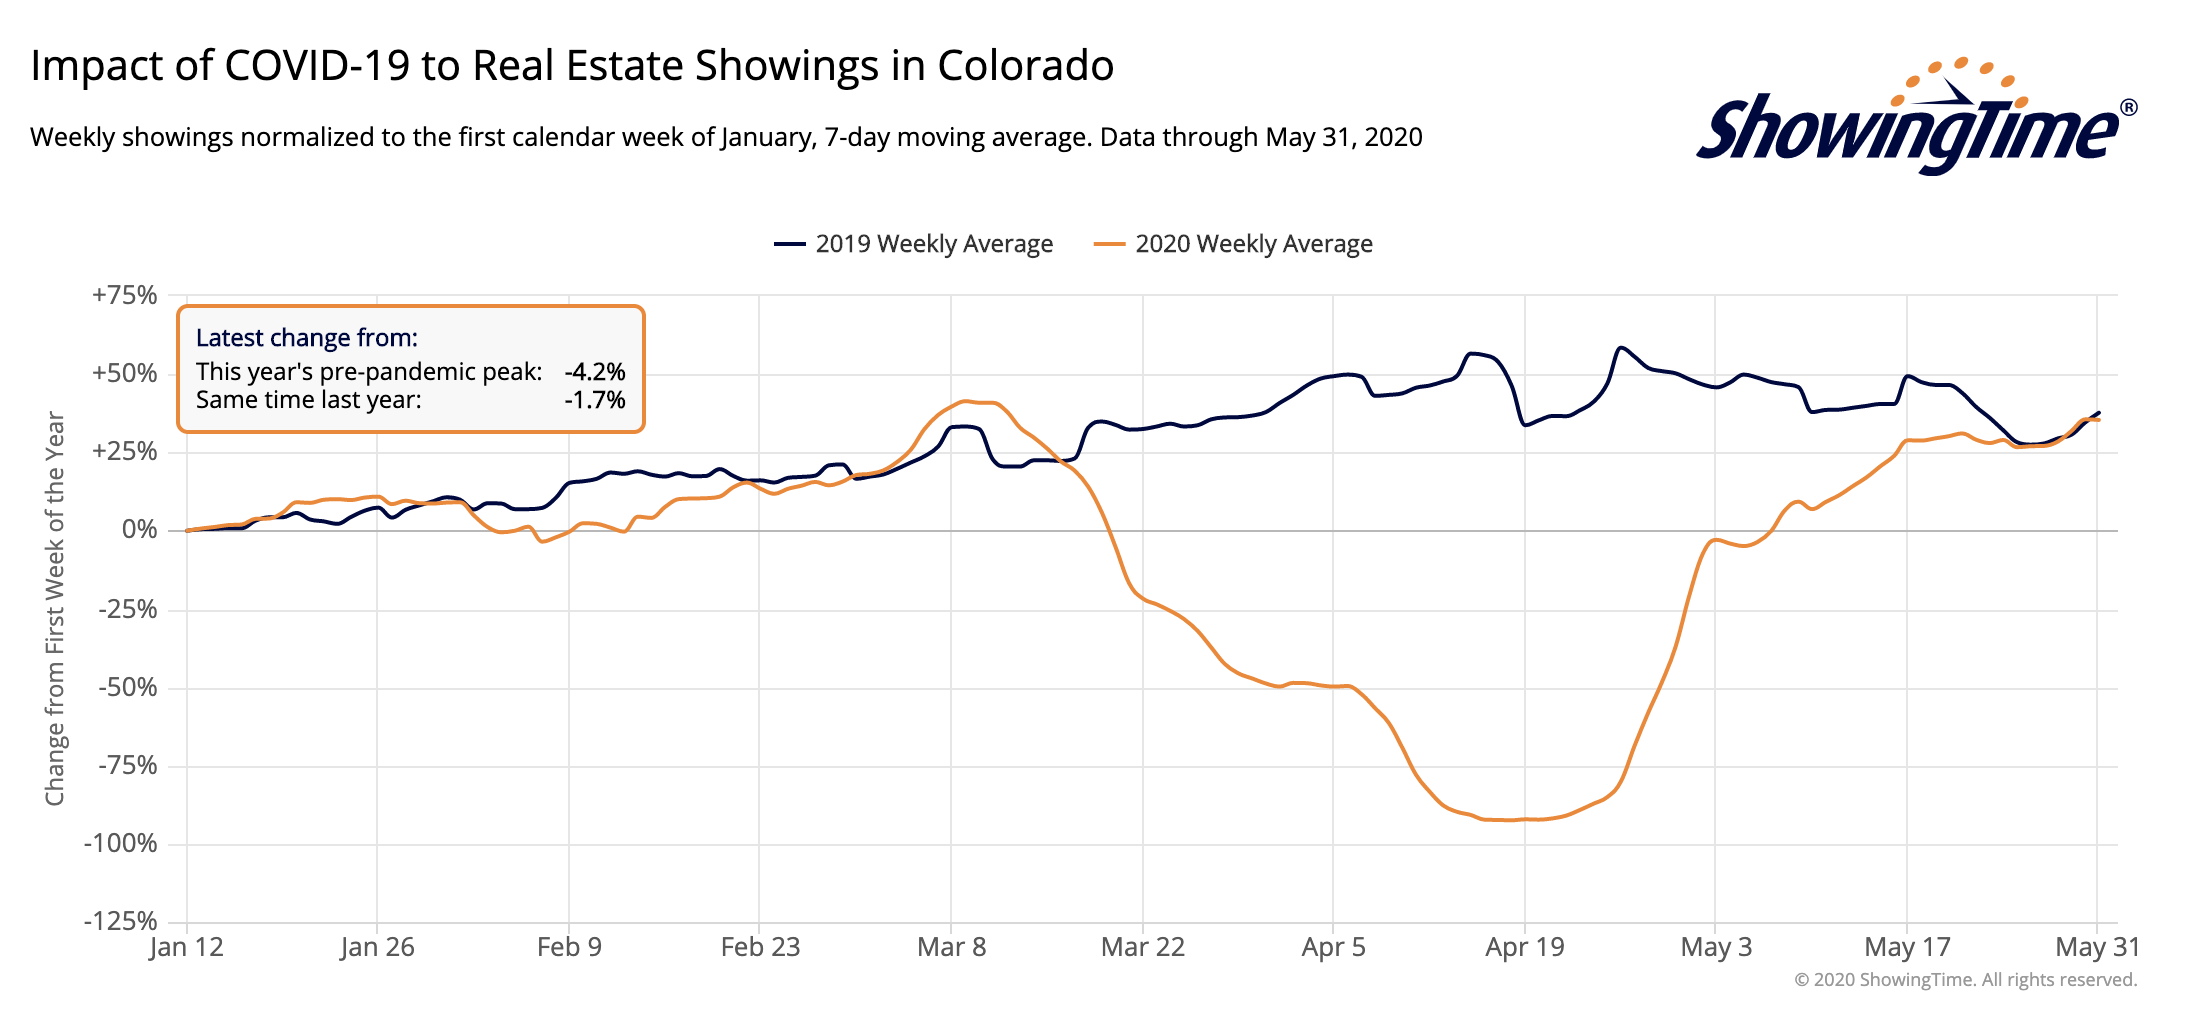 Chart showing the impact of COVID-19 to real estate showings in Denver